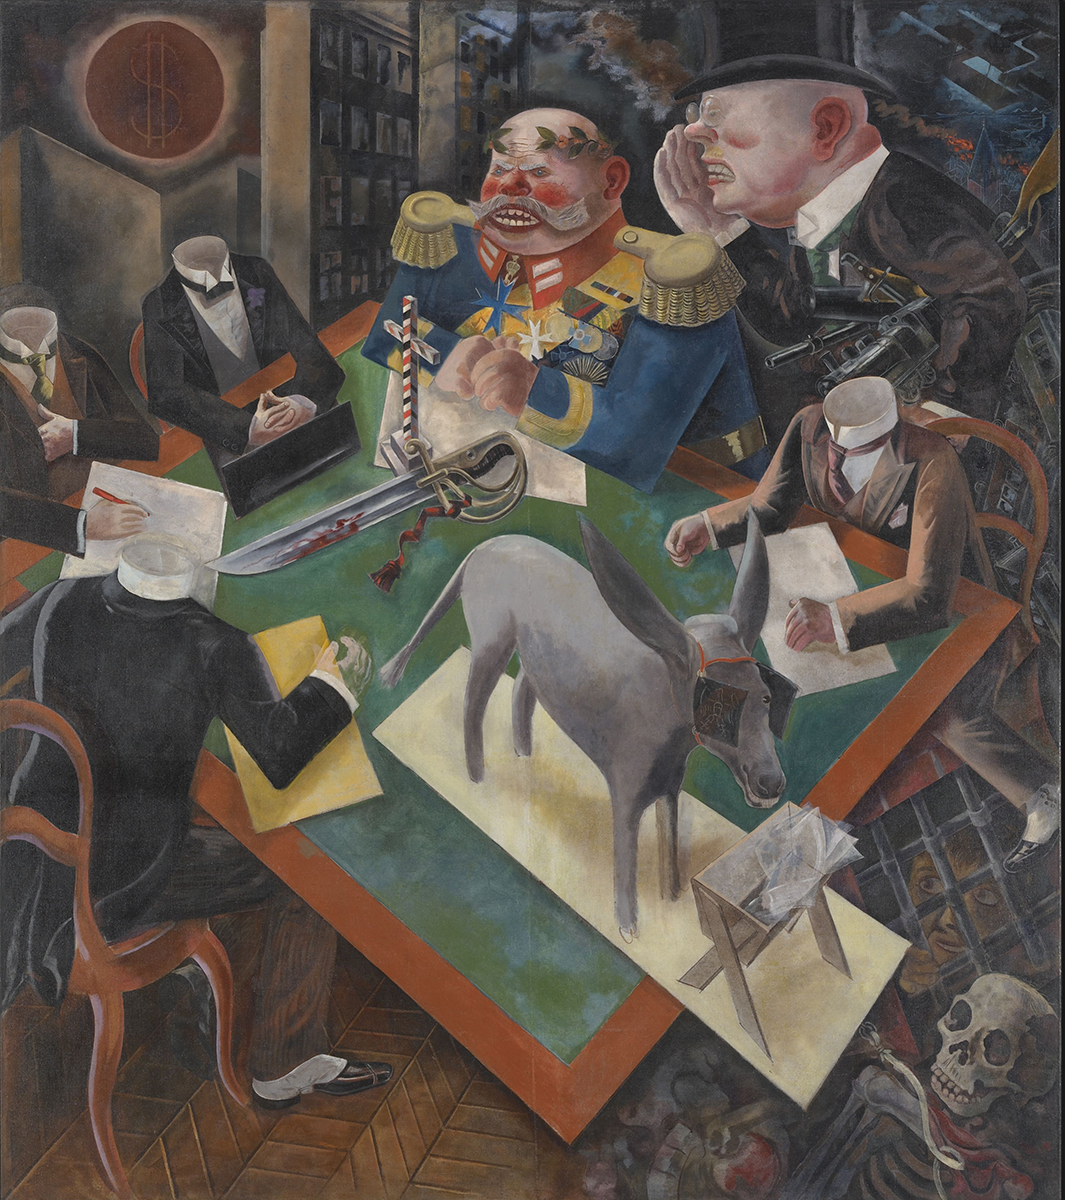 Power, Politics & War: Selections from the Permanent Collection George Grosz Eclipse of the Sun . 1926